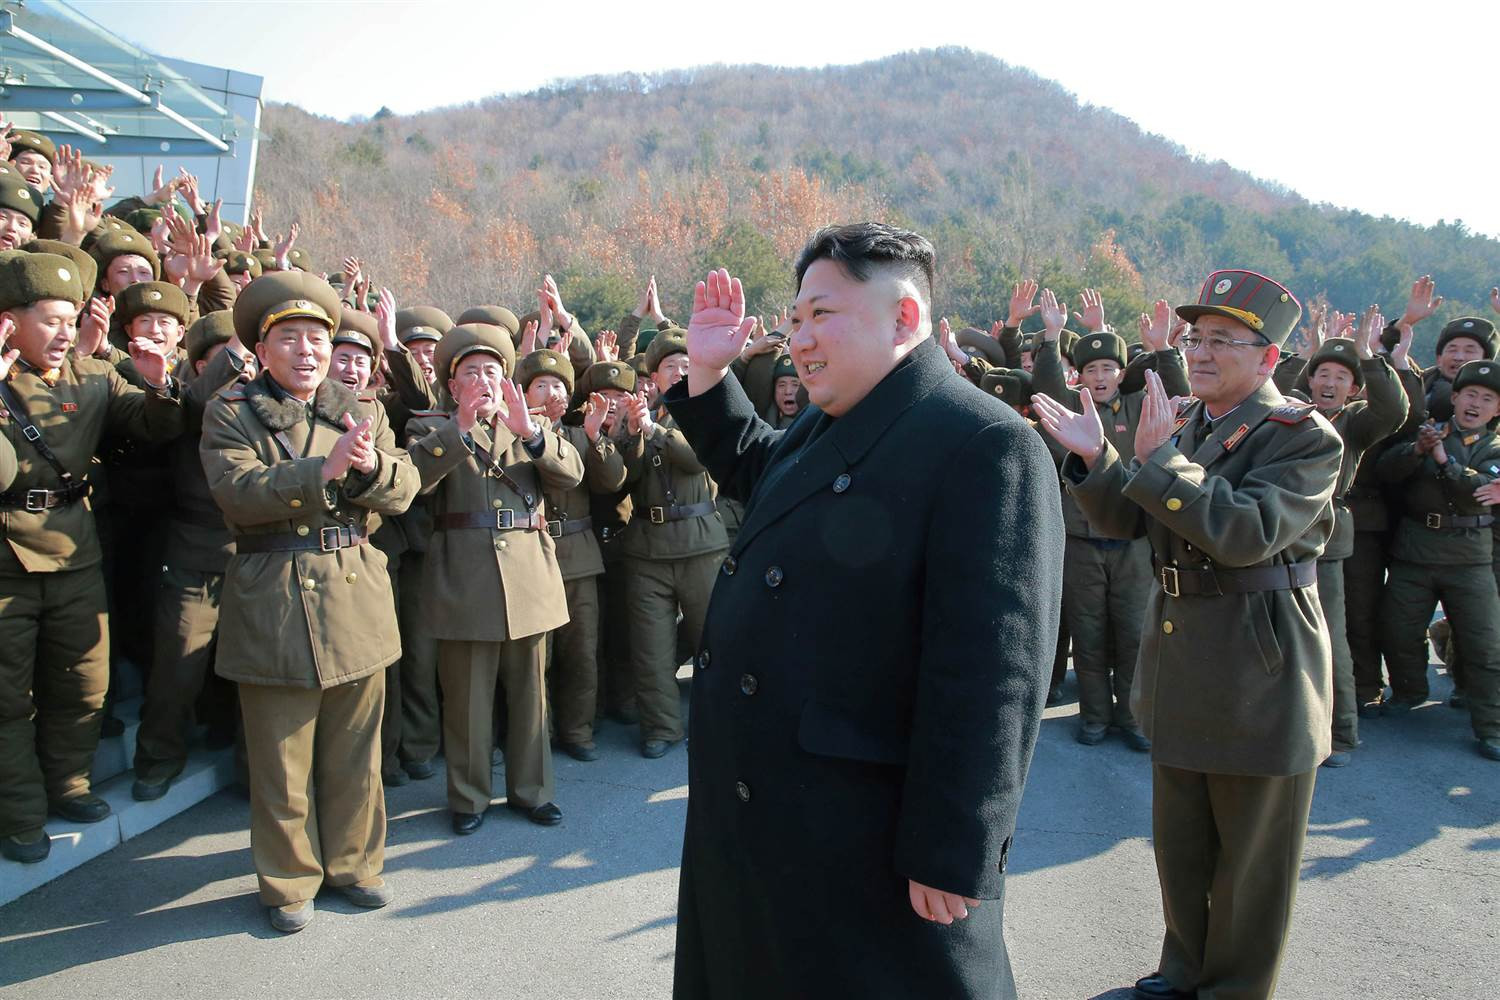 Olympics: The Kim Jong Un impersonator returns, and police escort him out